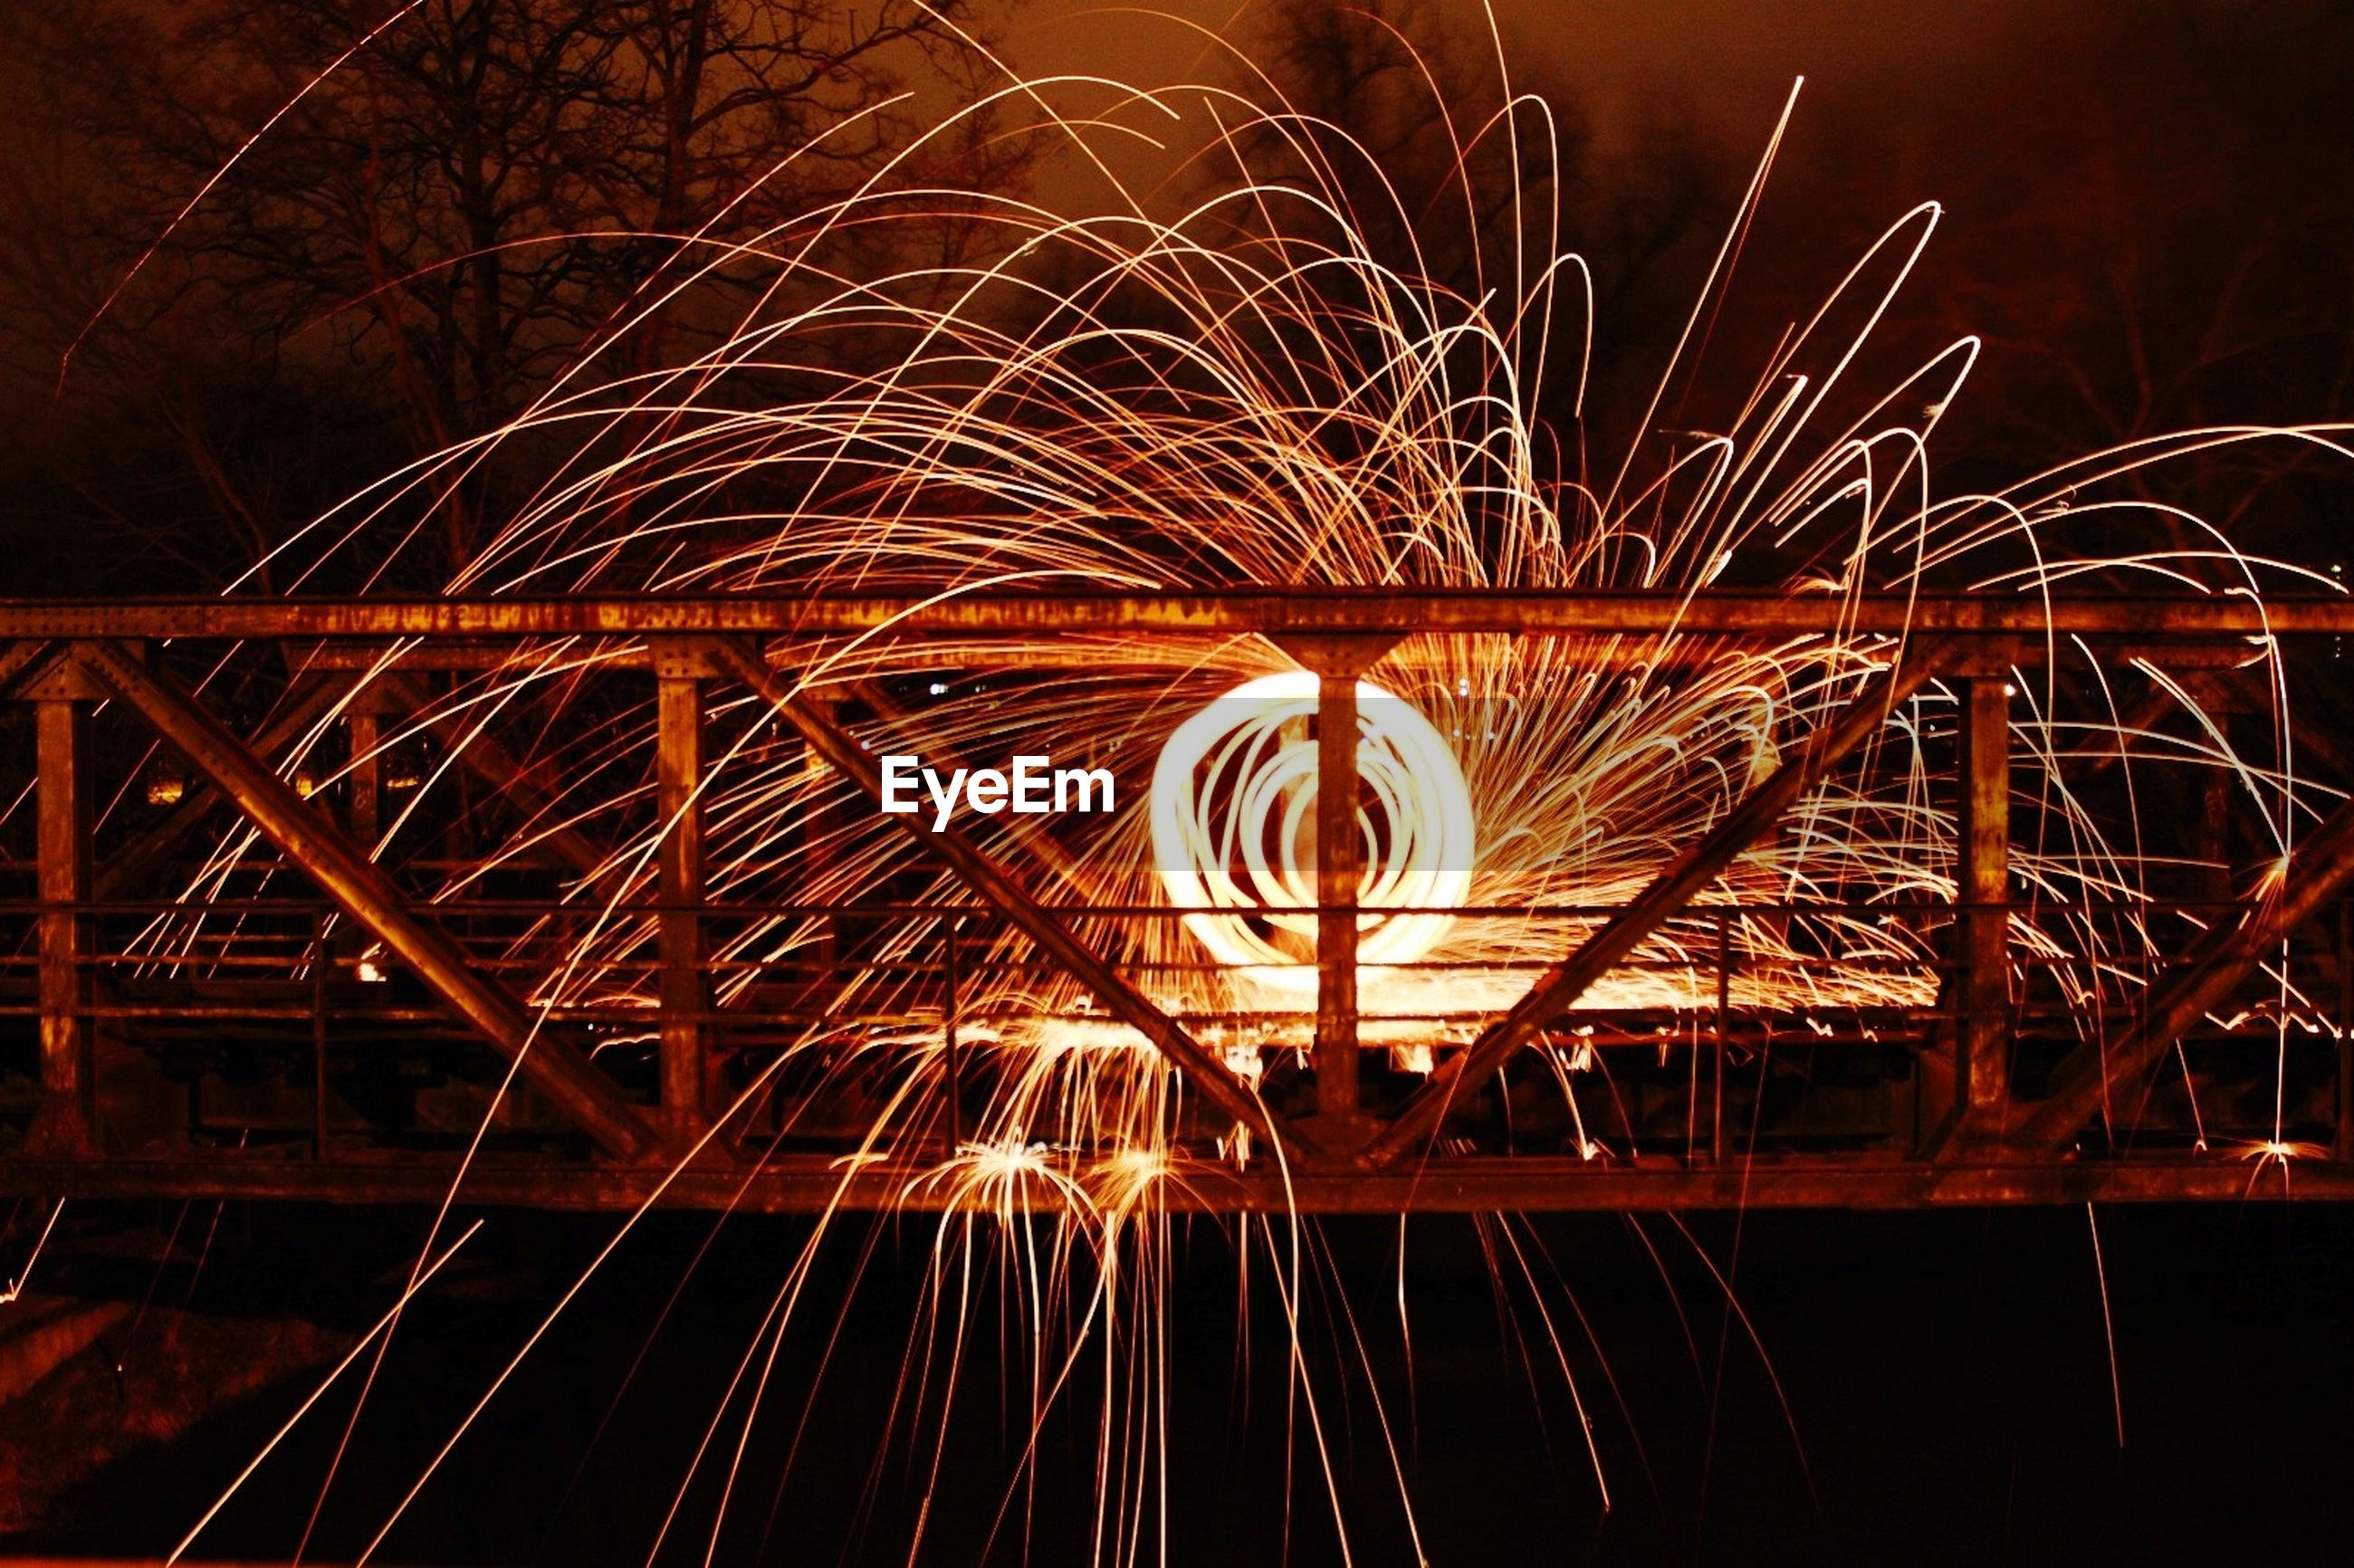 night, illuminated, motion, long exposure, blurred motion, wire wool, glowing, spinning, sparks, nature, arts culture and entertainment, one person, speed, orange color, fire, architecture, burning, outdoors, firework, light, dark, firework display, firework - man made object